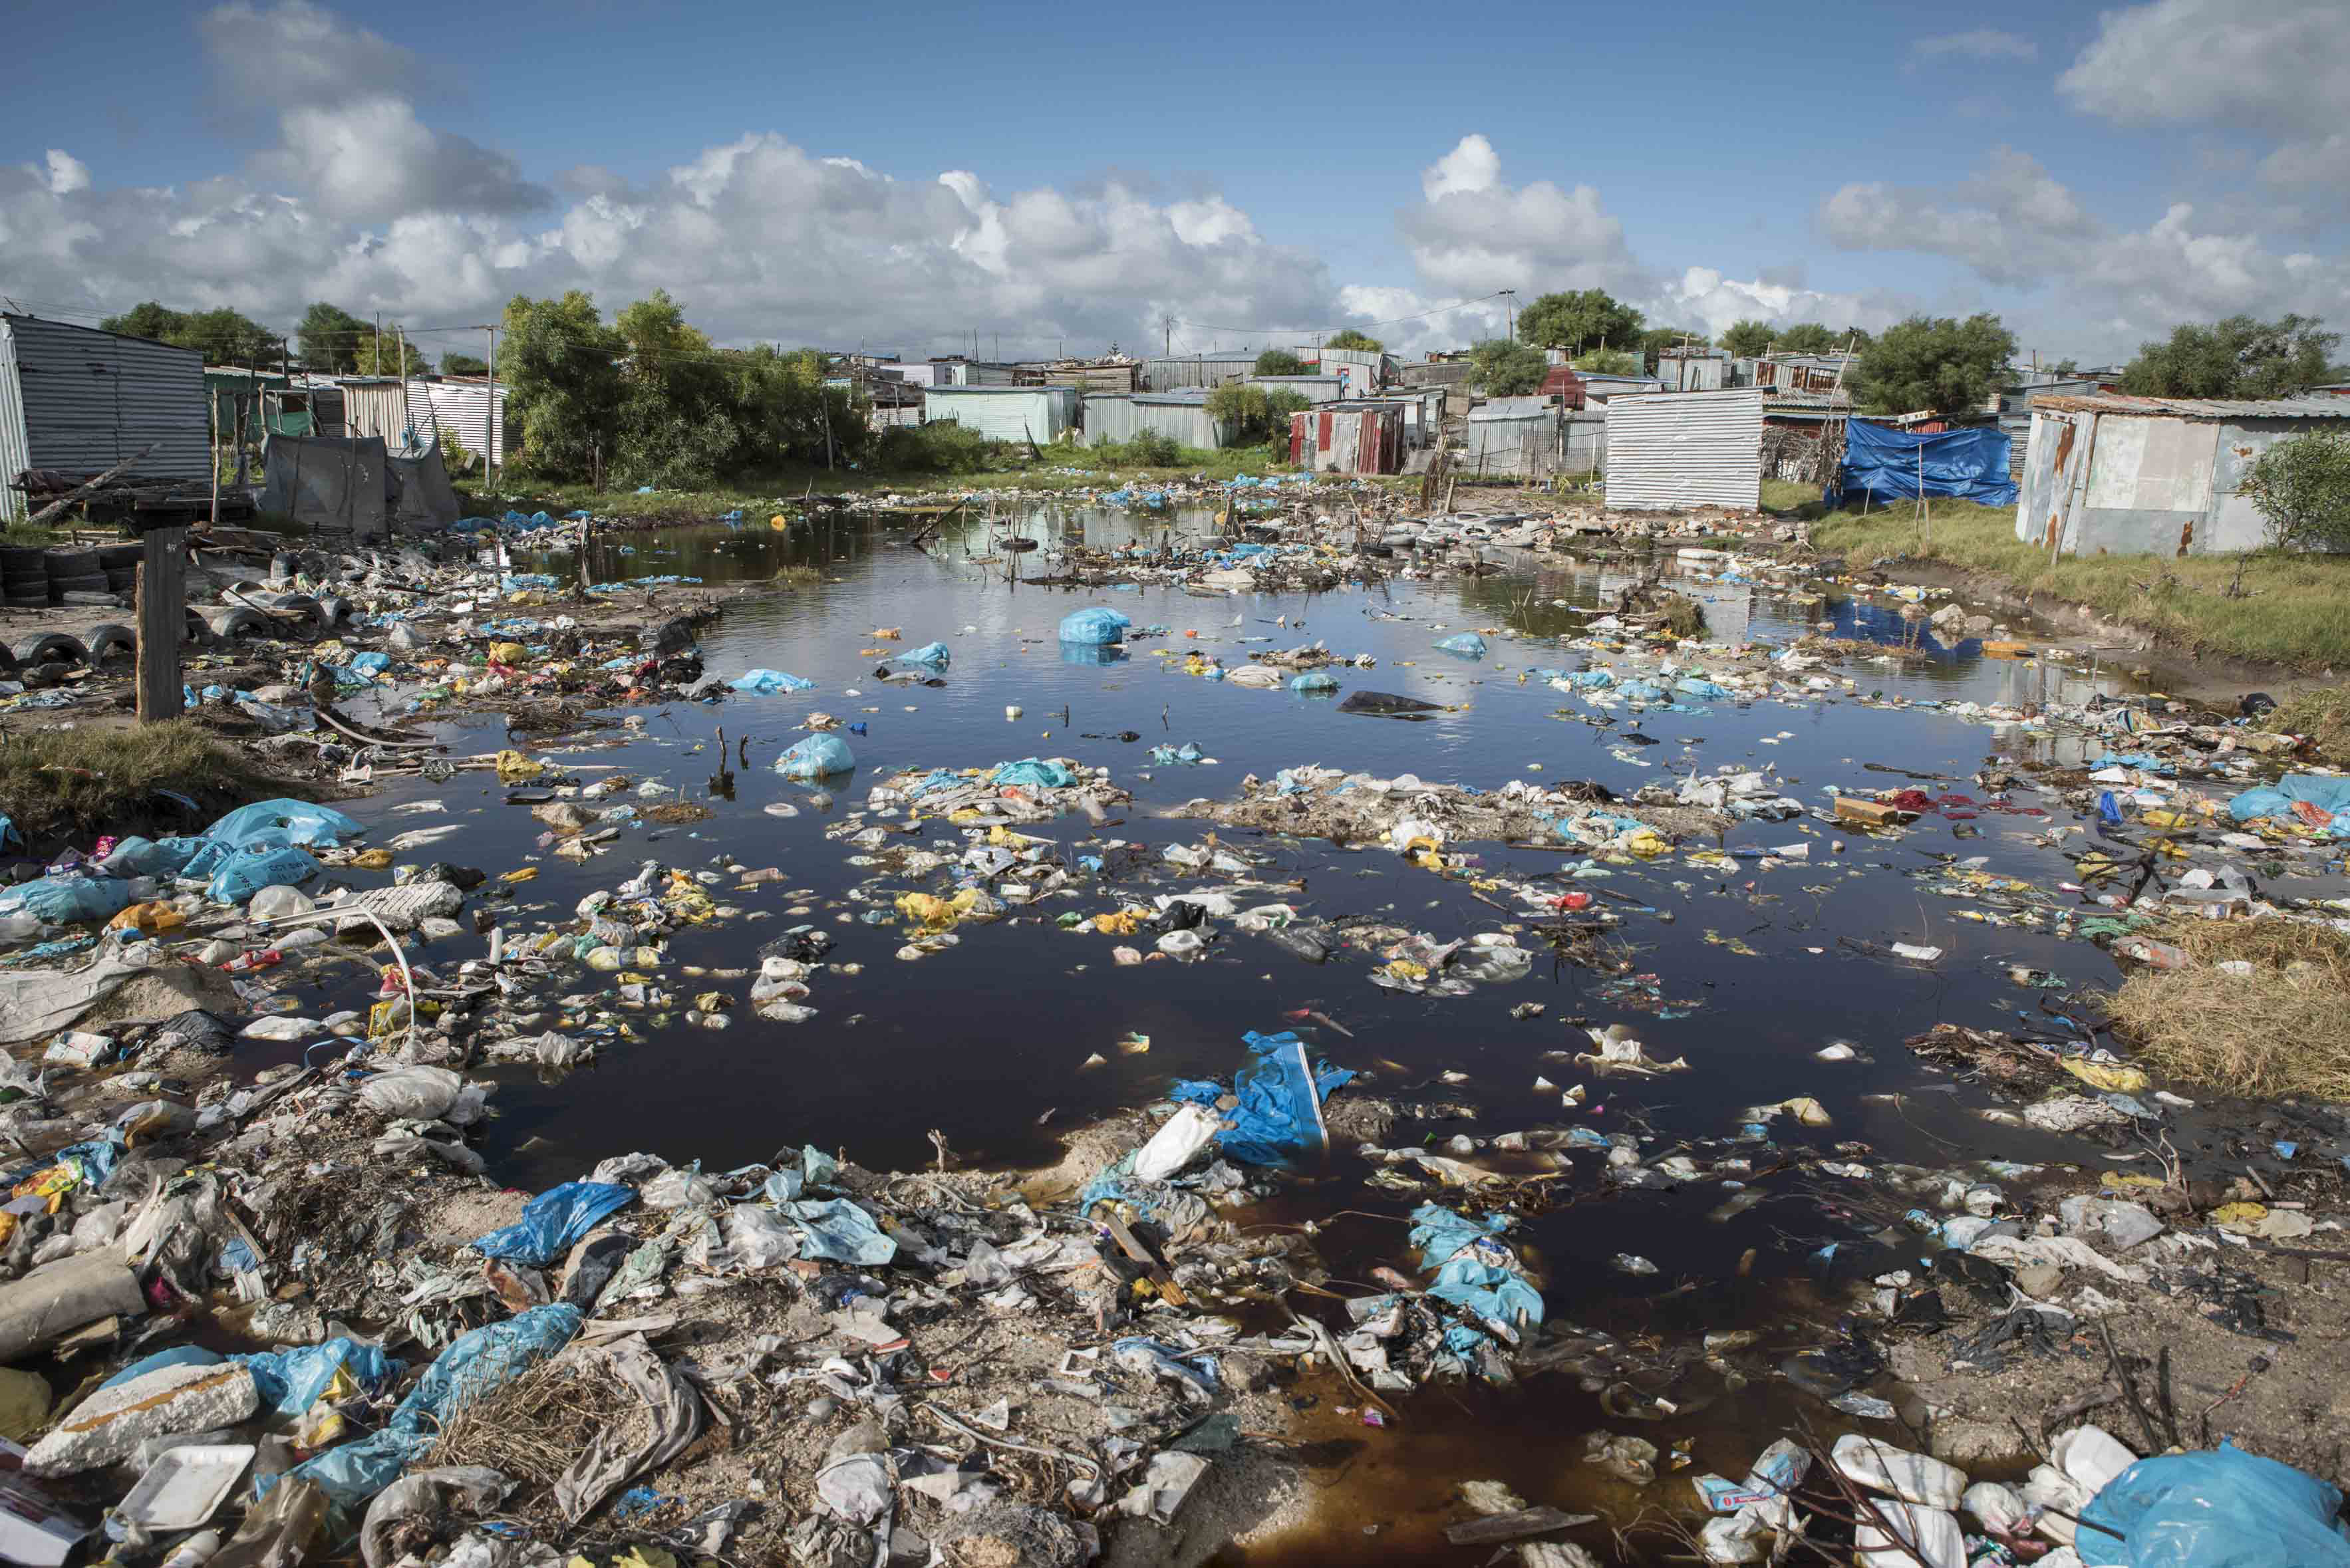 26 April 2018: Heavy rains and poor drainage result in a large pool of heavily polluted stagnant water. Much of the Marikana settlement is under the water table resulting in regular flooding.